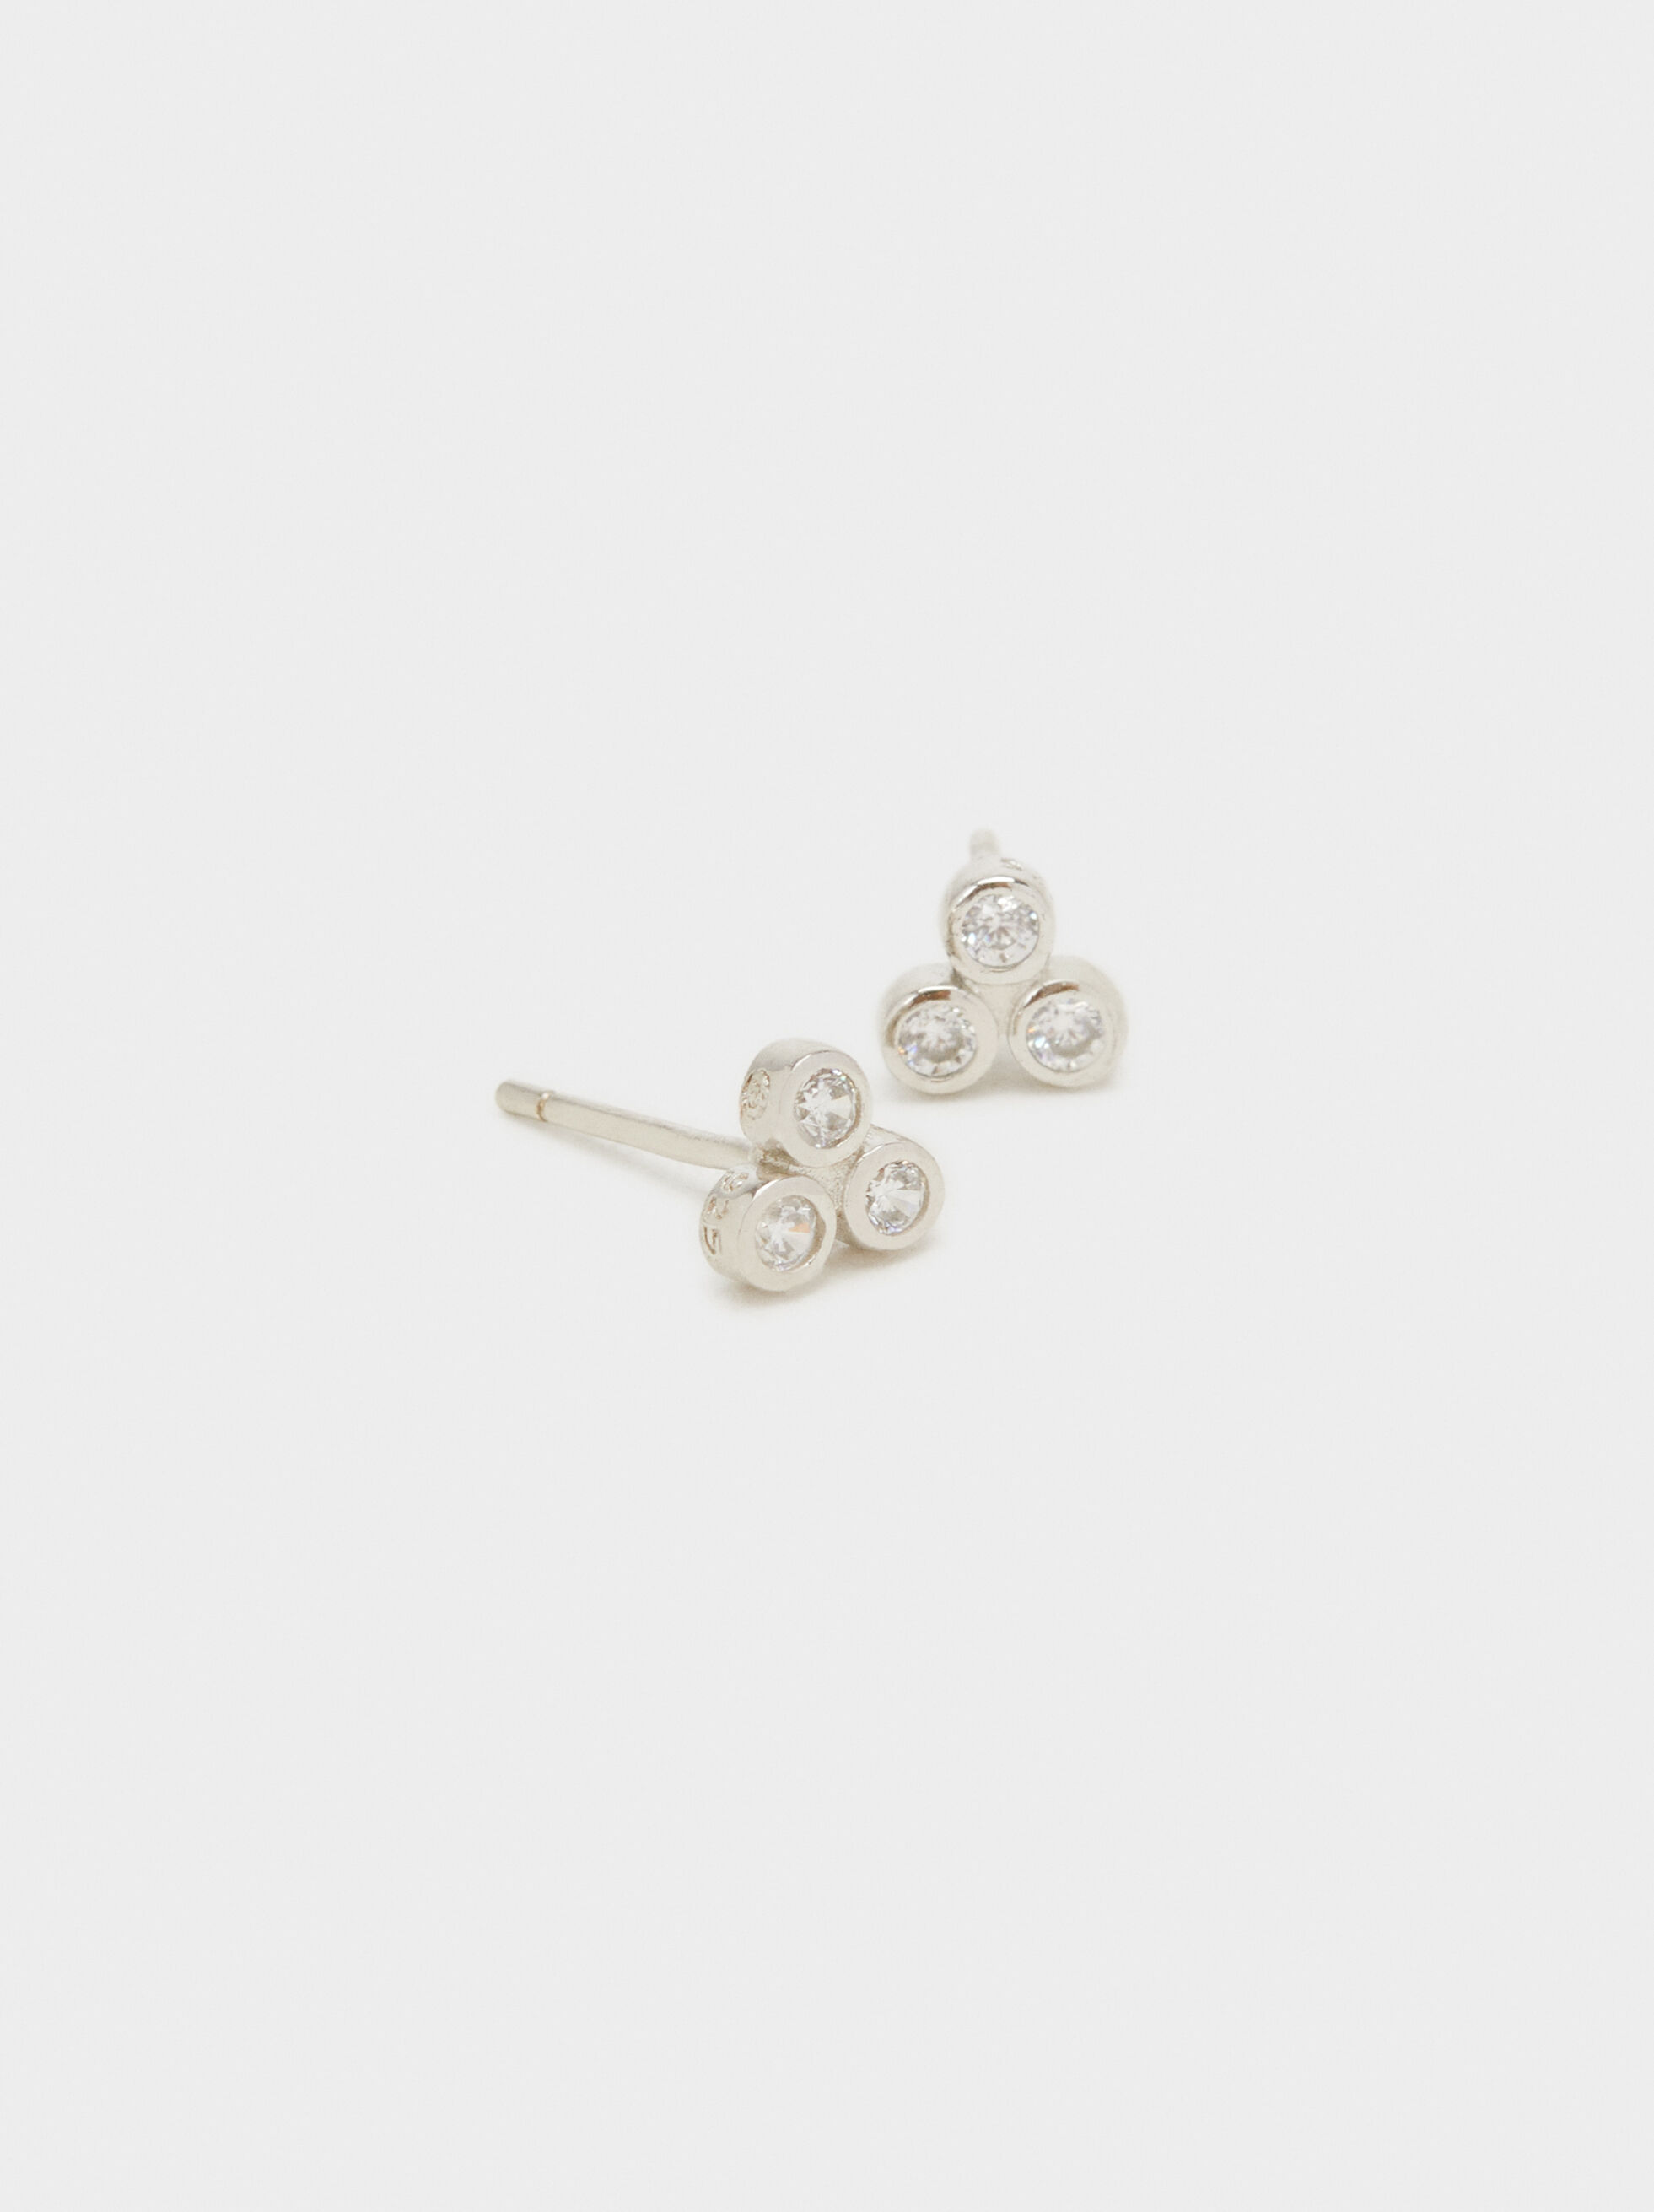 925 Silver Stud Earrings With Rhinestones, Silver, hi-res